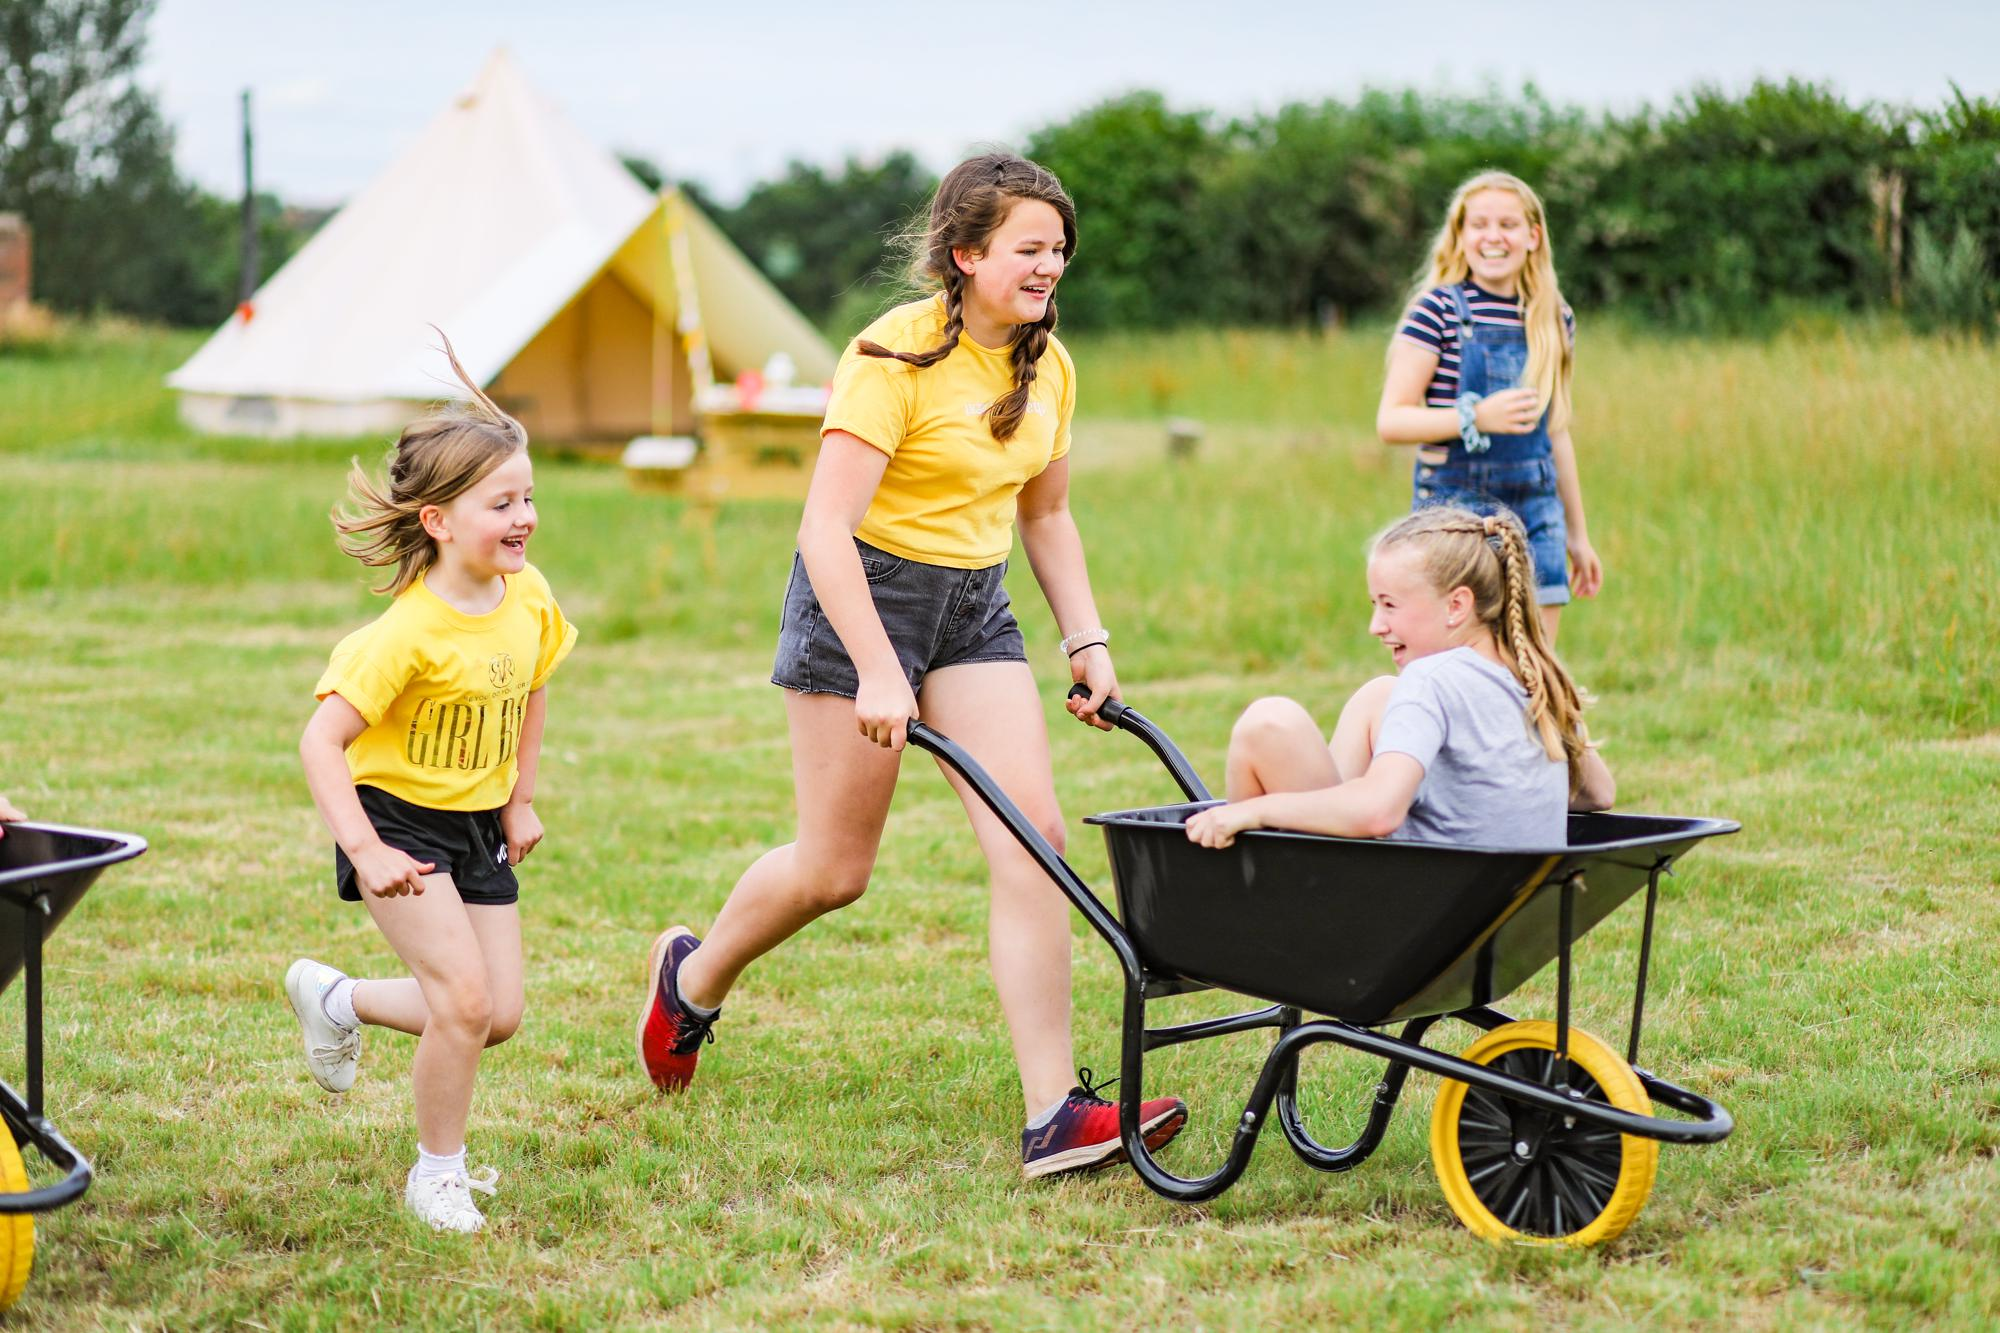 Glamping in Stourport – Cool Camping